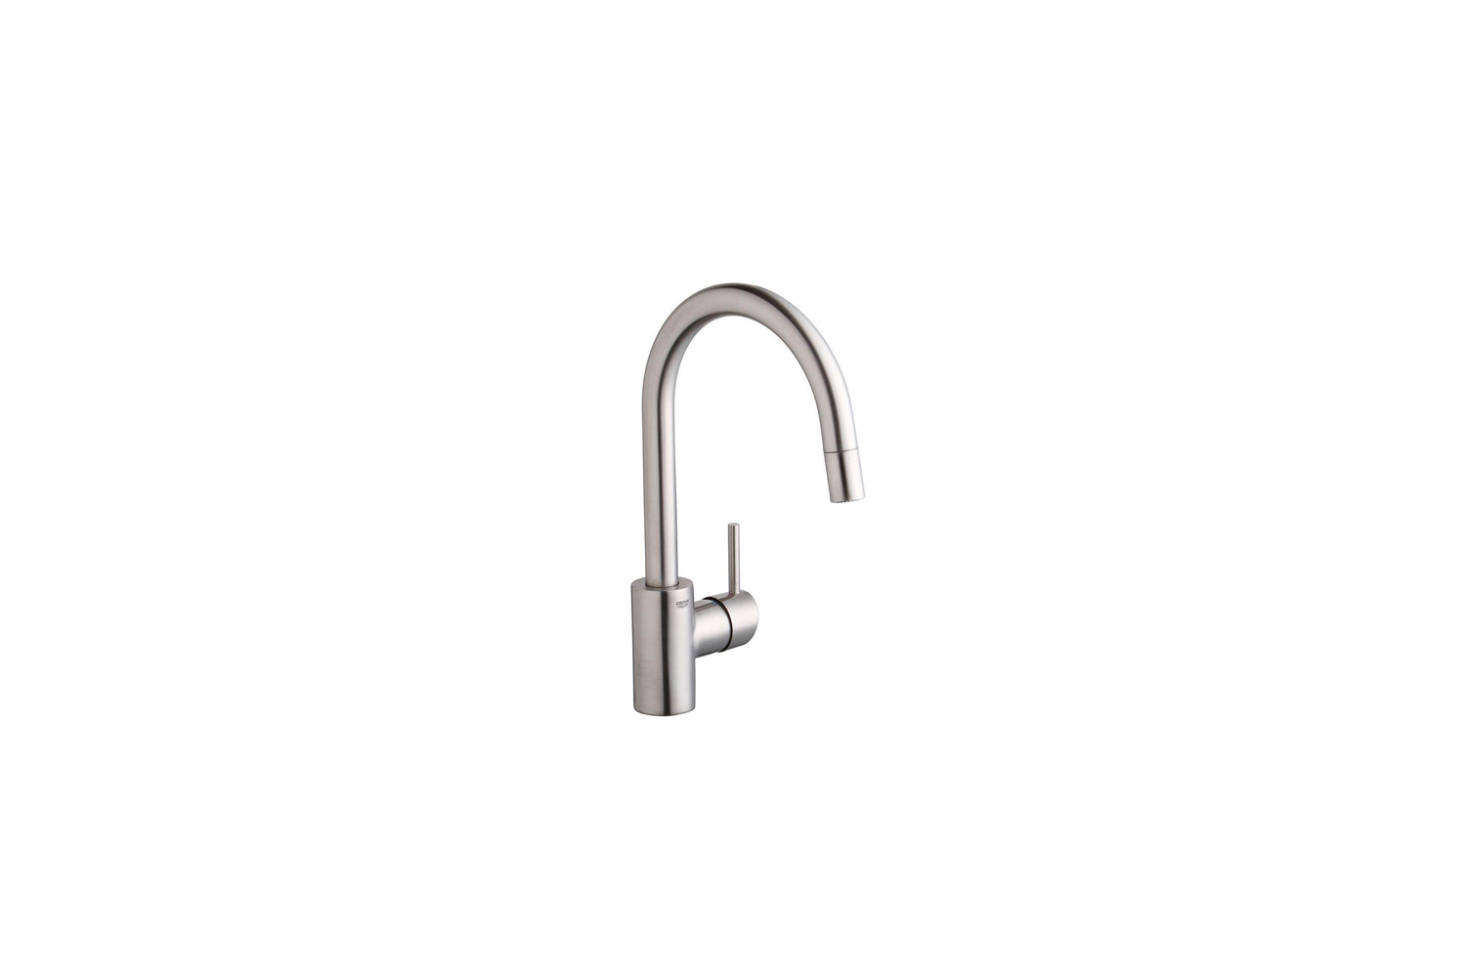 Izabella first wrote about her kitchen faucet decision in High/Low: Dornbracht vs. Grohe Kitchen Faucet. Spoiler alert: They went with the Grohe, the Concetto Single Handle Pull-Out Spray Faucet for $39src=